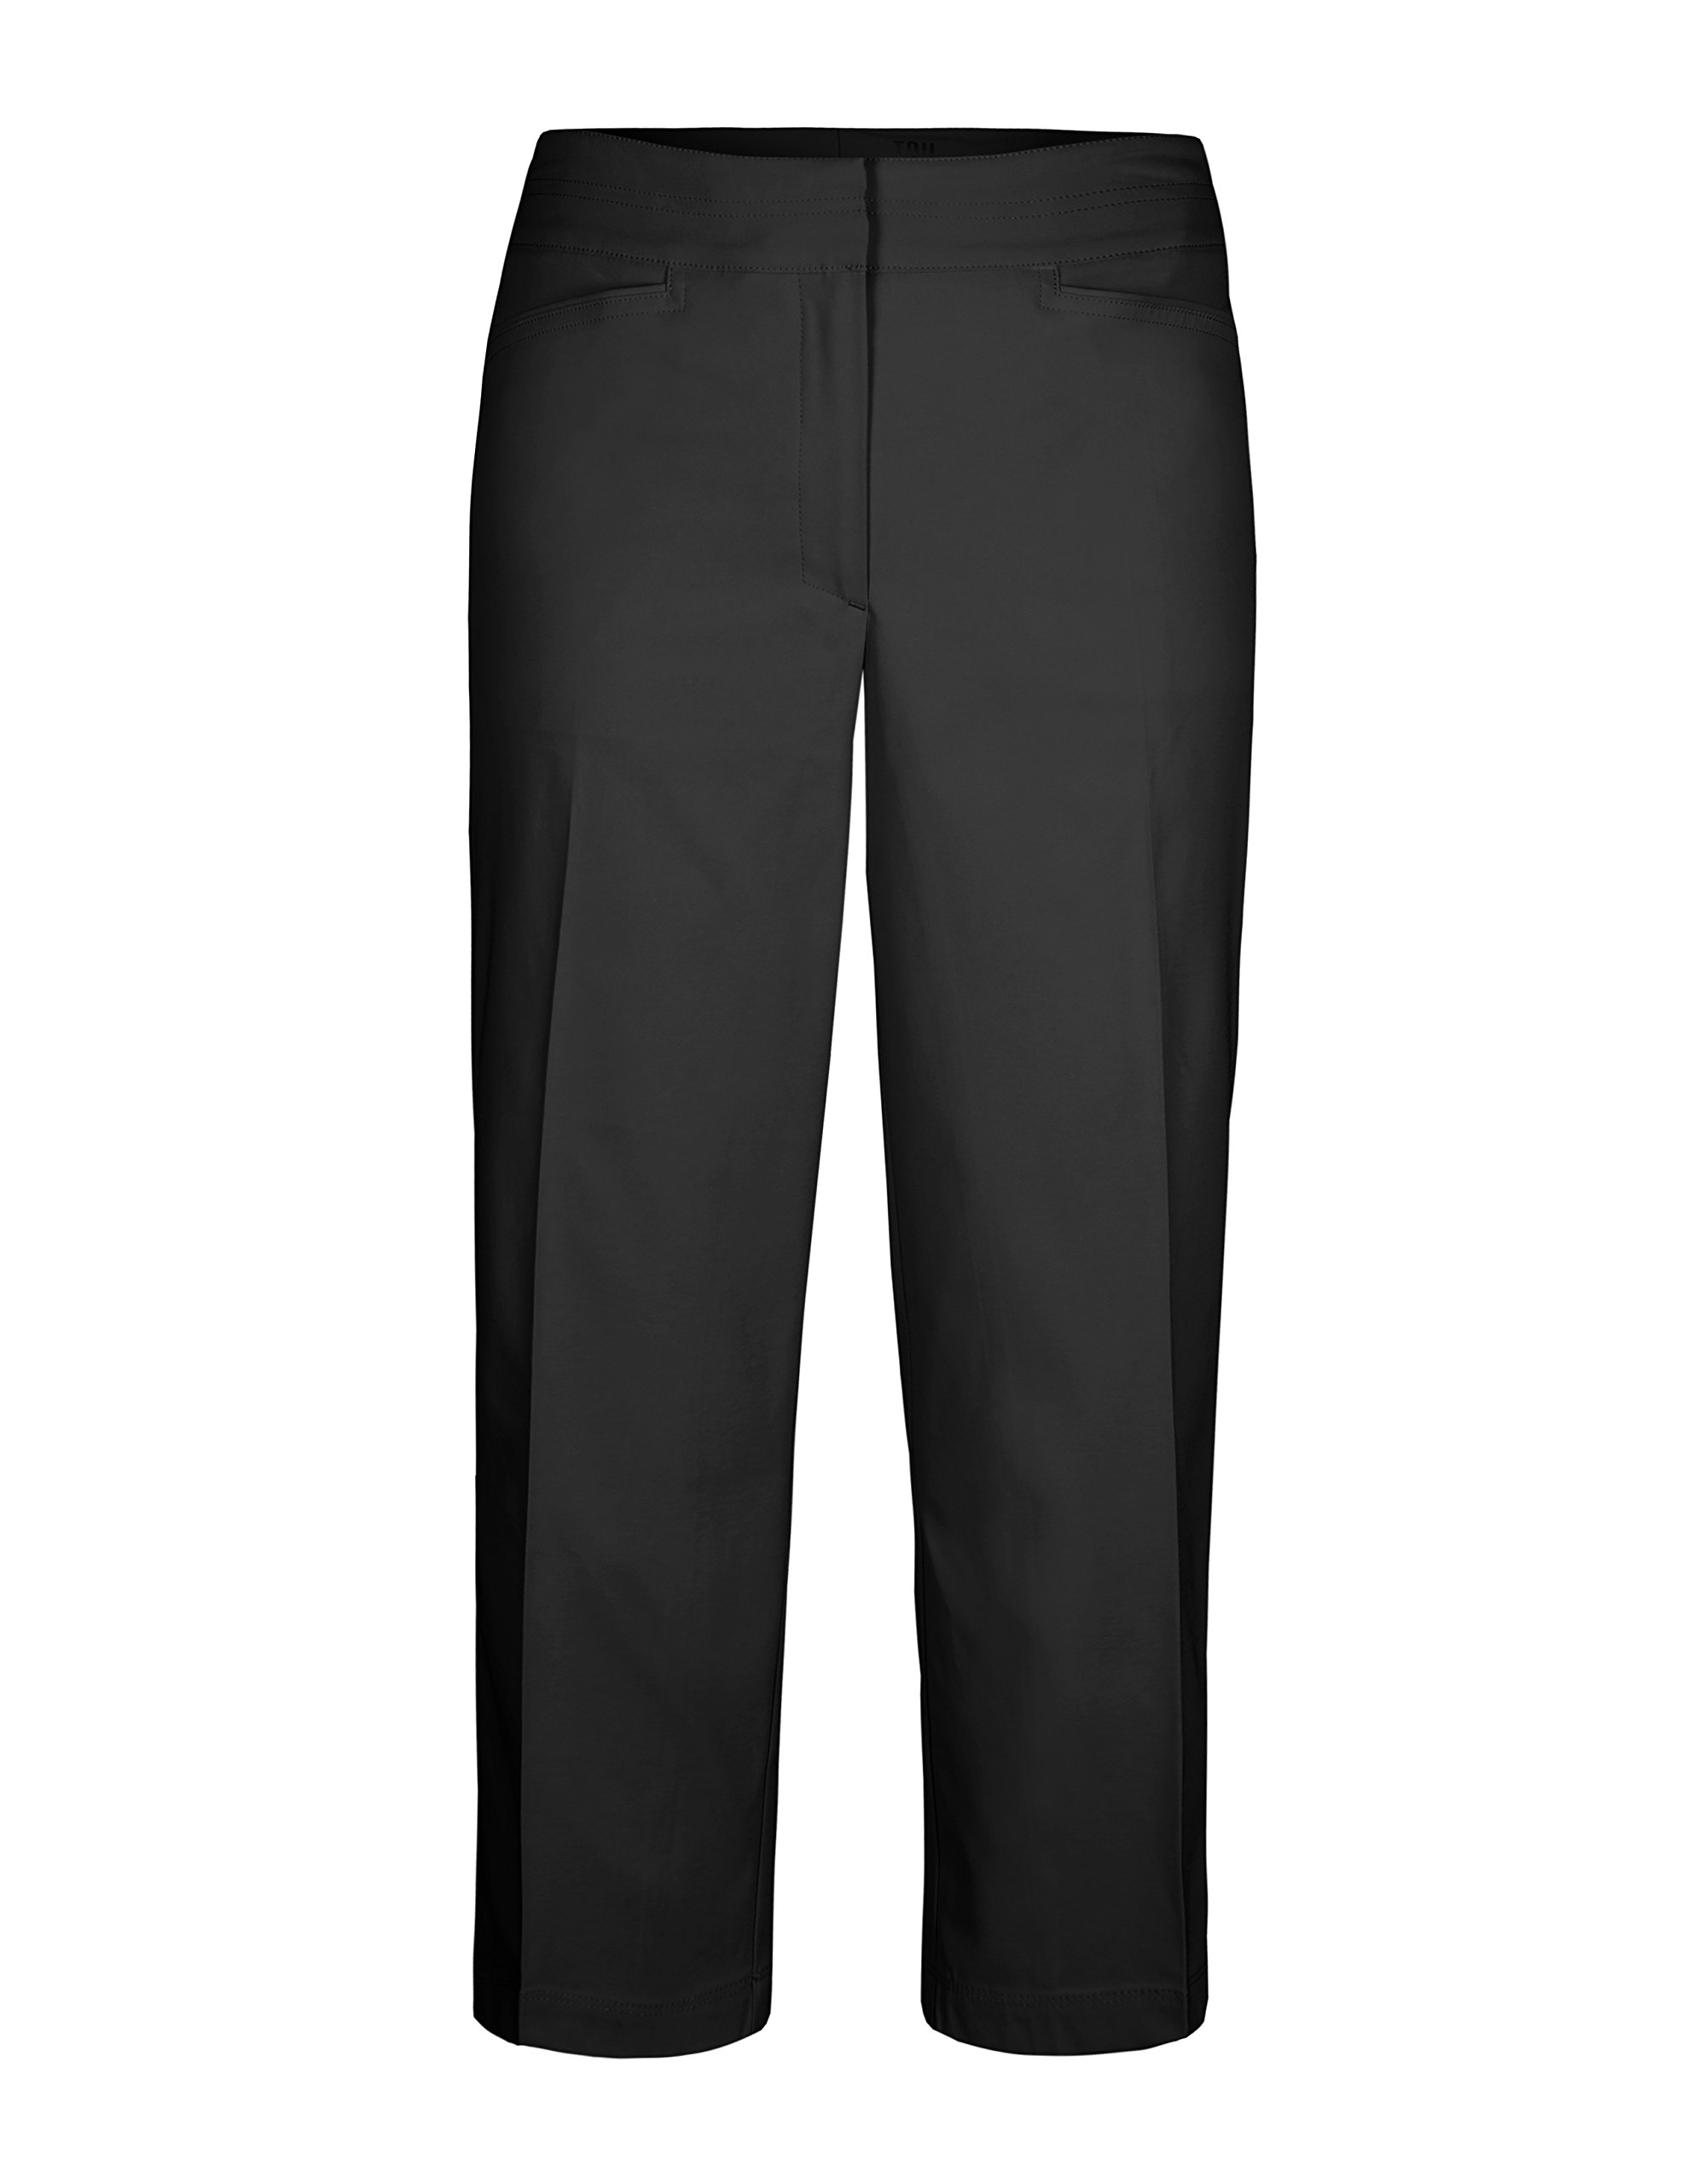 Tail Activewear Women's Classic Capri 6 Black by Tail (Image #3)